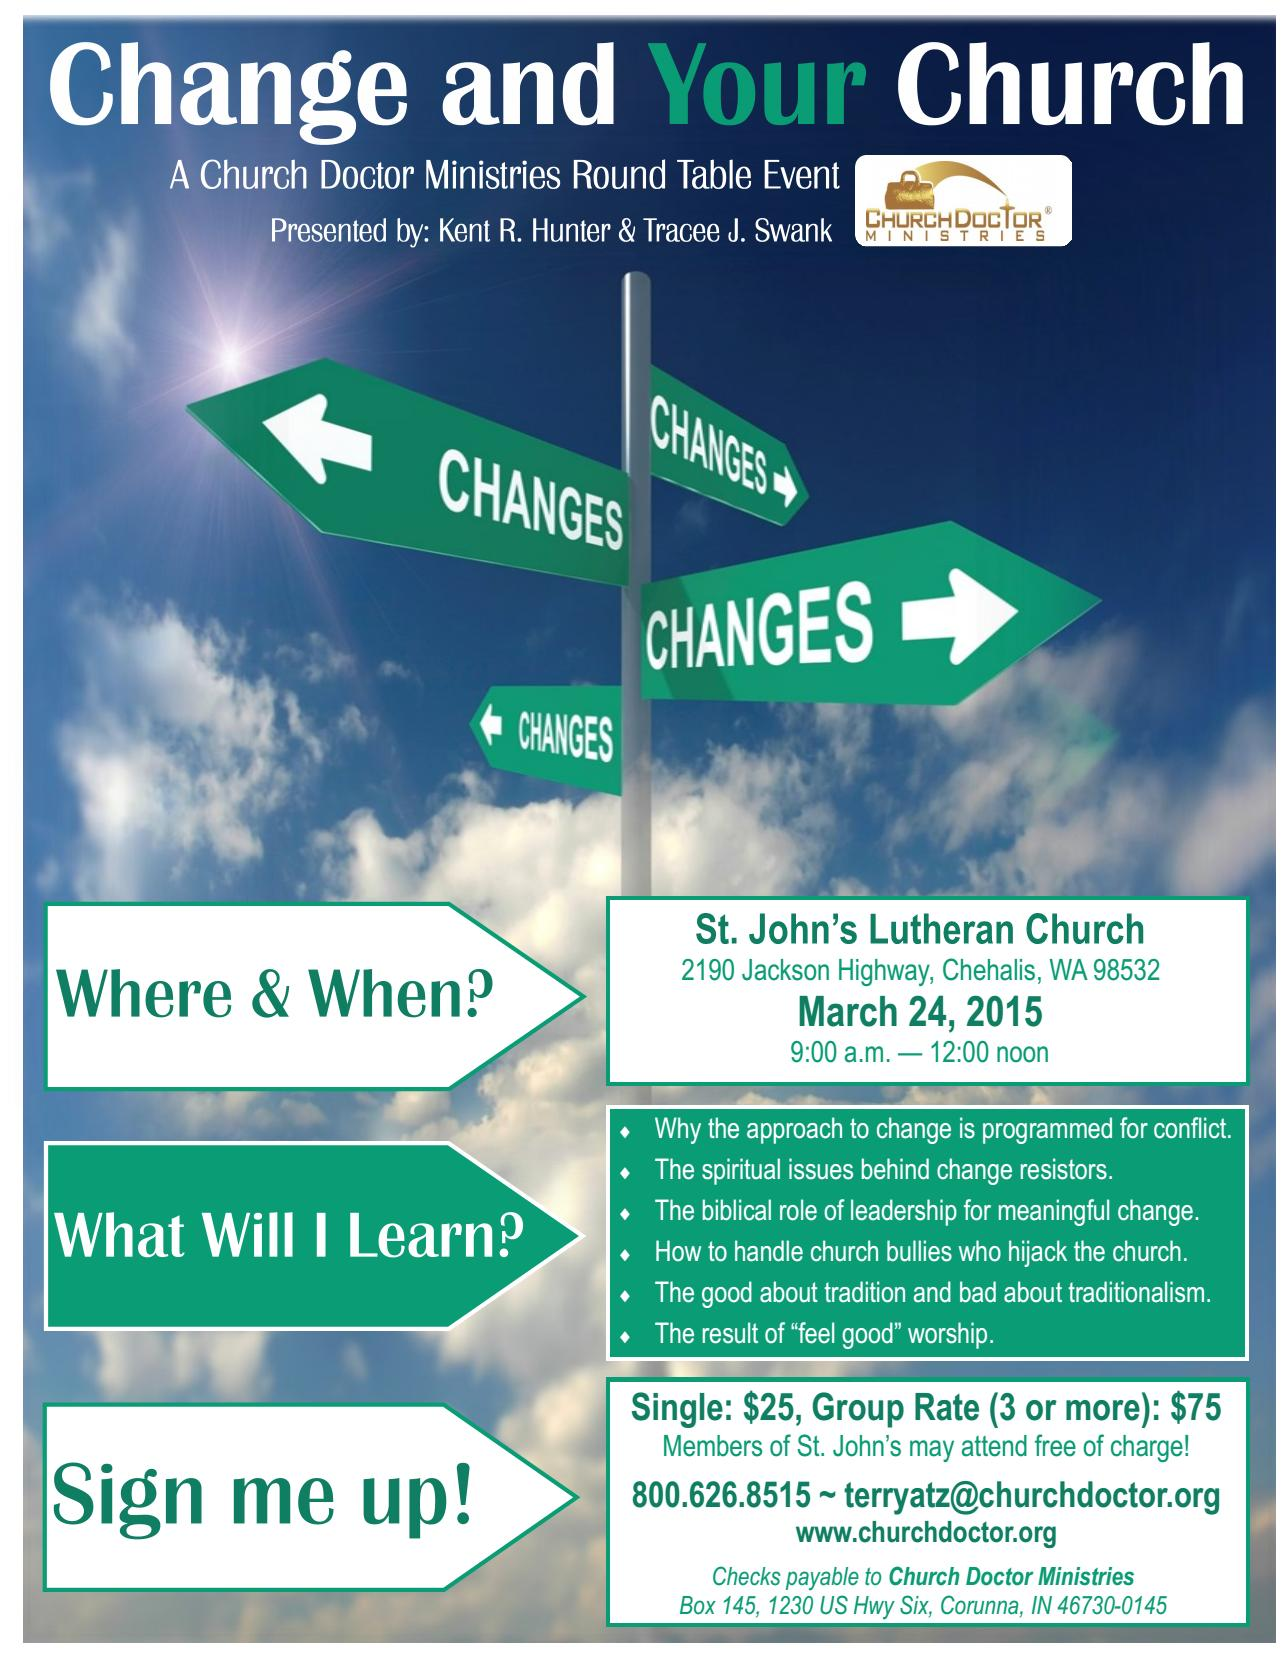 Change and YOUR Church Round Table Discussion – March 24, 2015 – Chehalis, WA